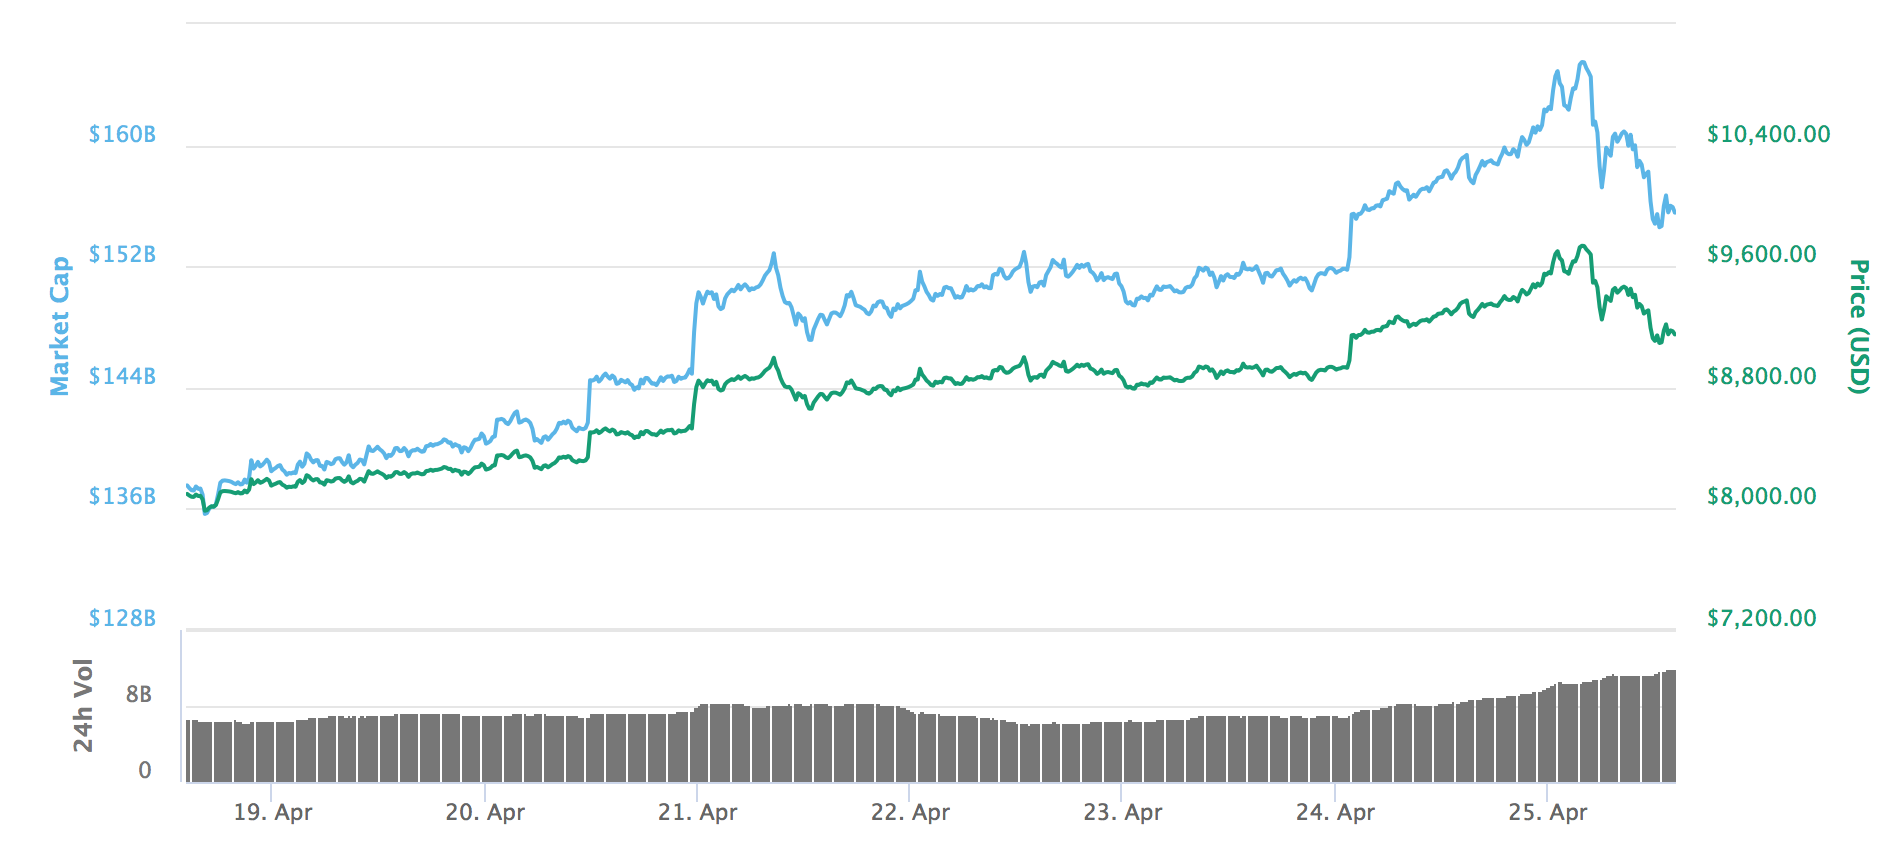 Bitcoin's price has steadily risen over the past seven days.